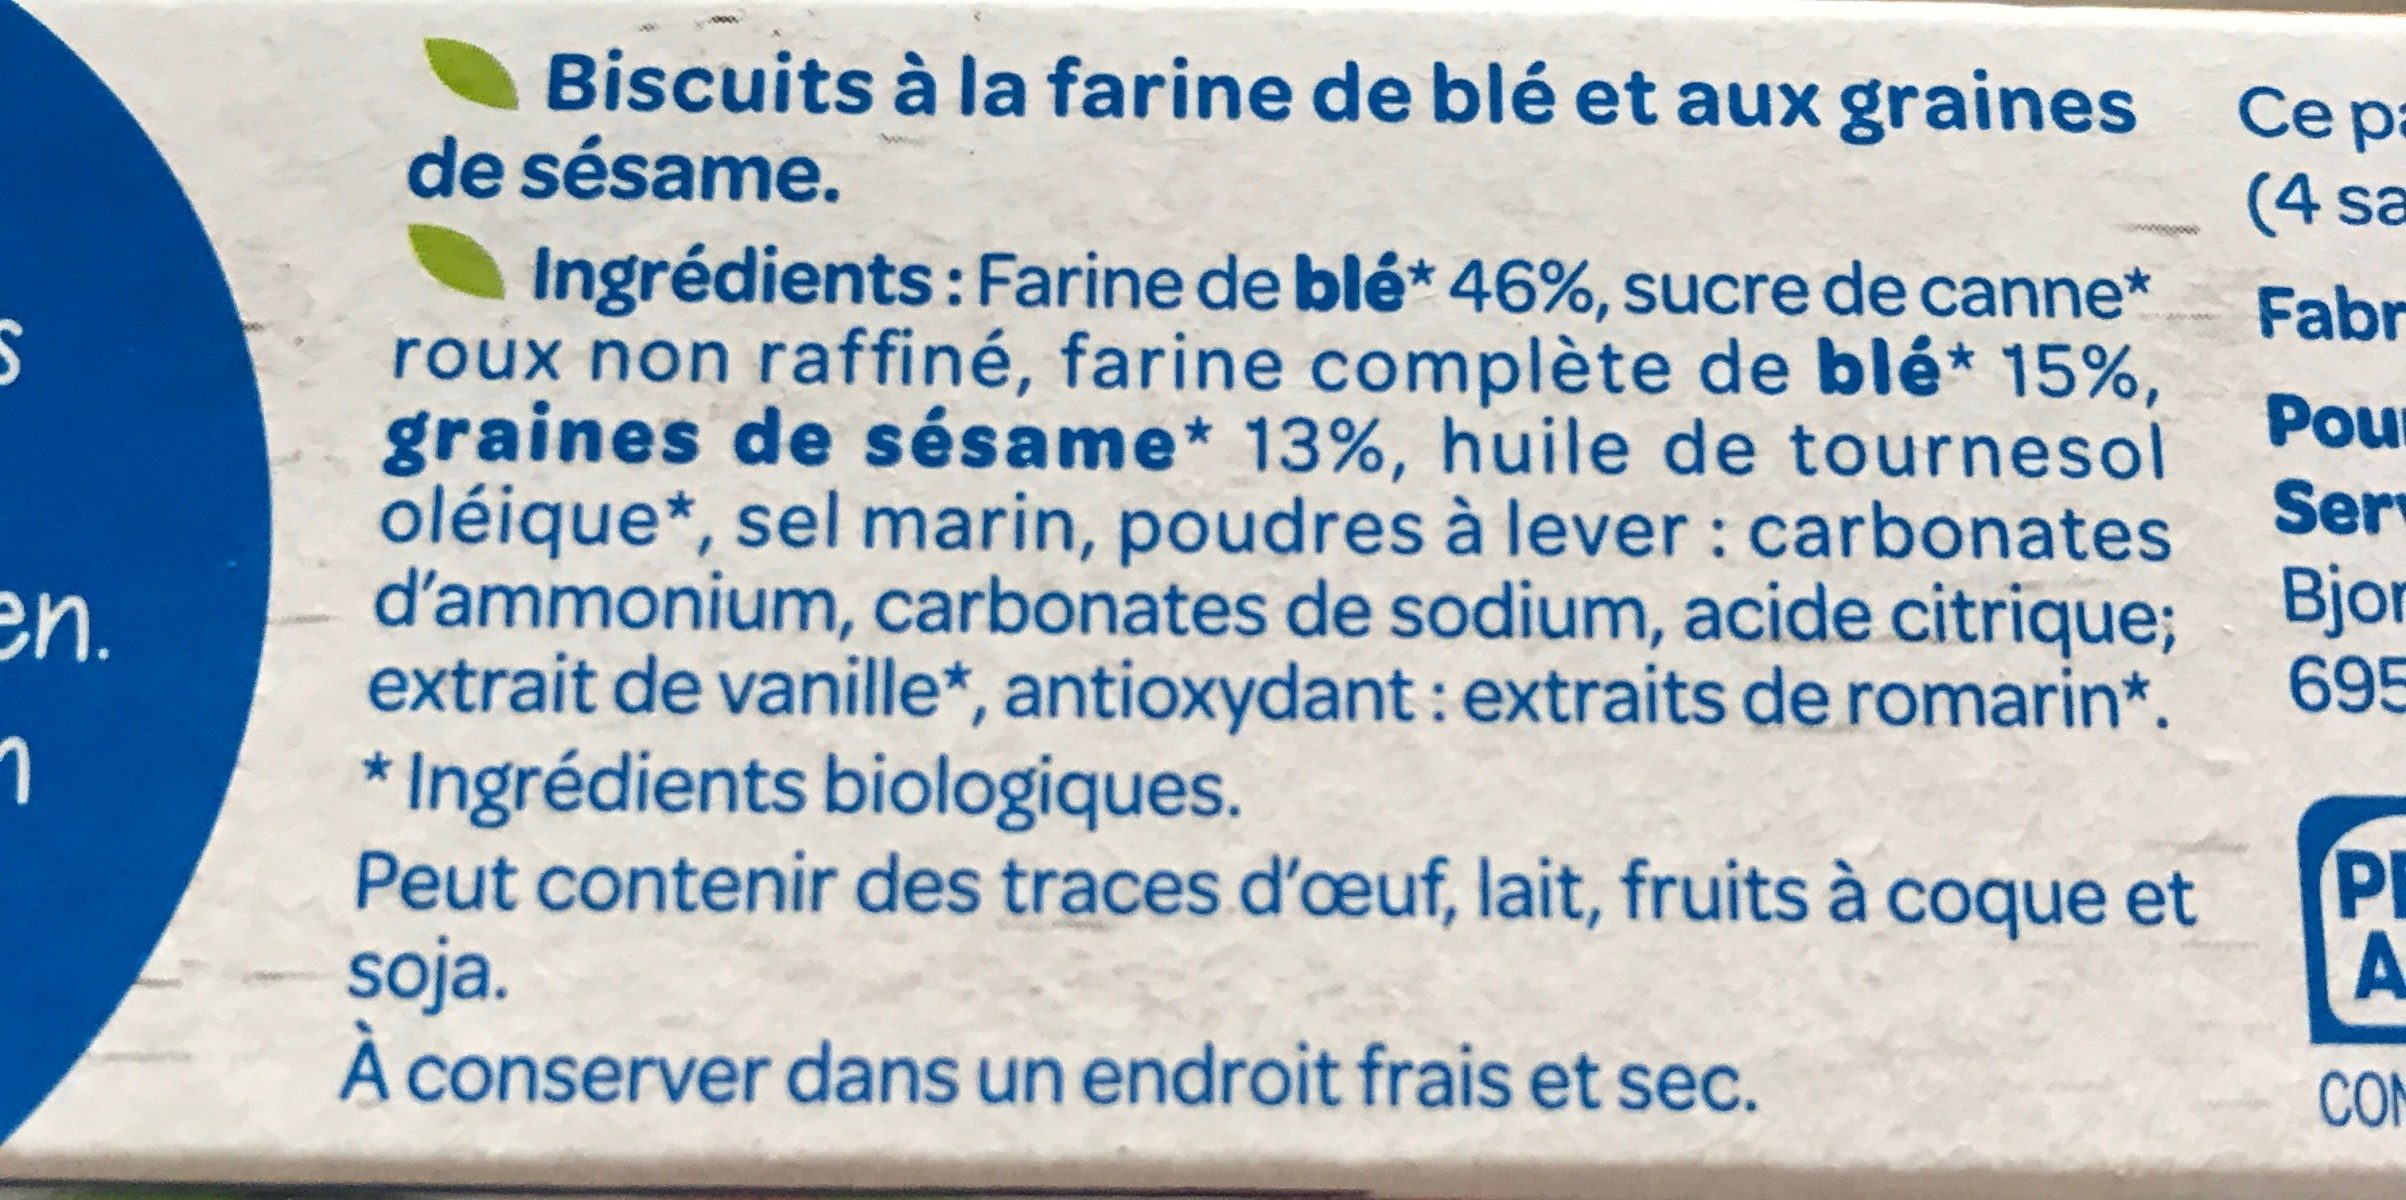 Blé sésame bio - Ingredients